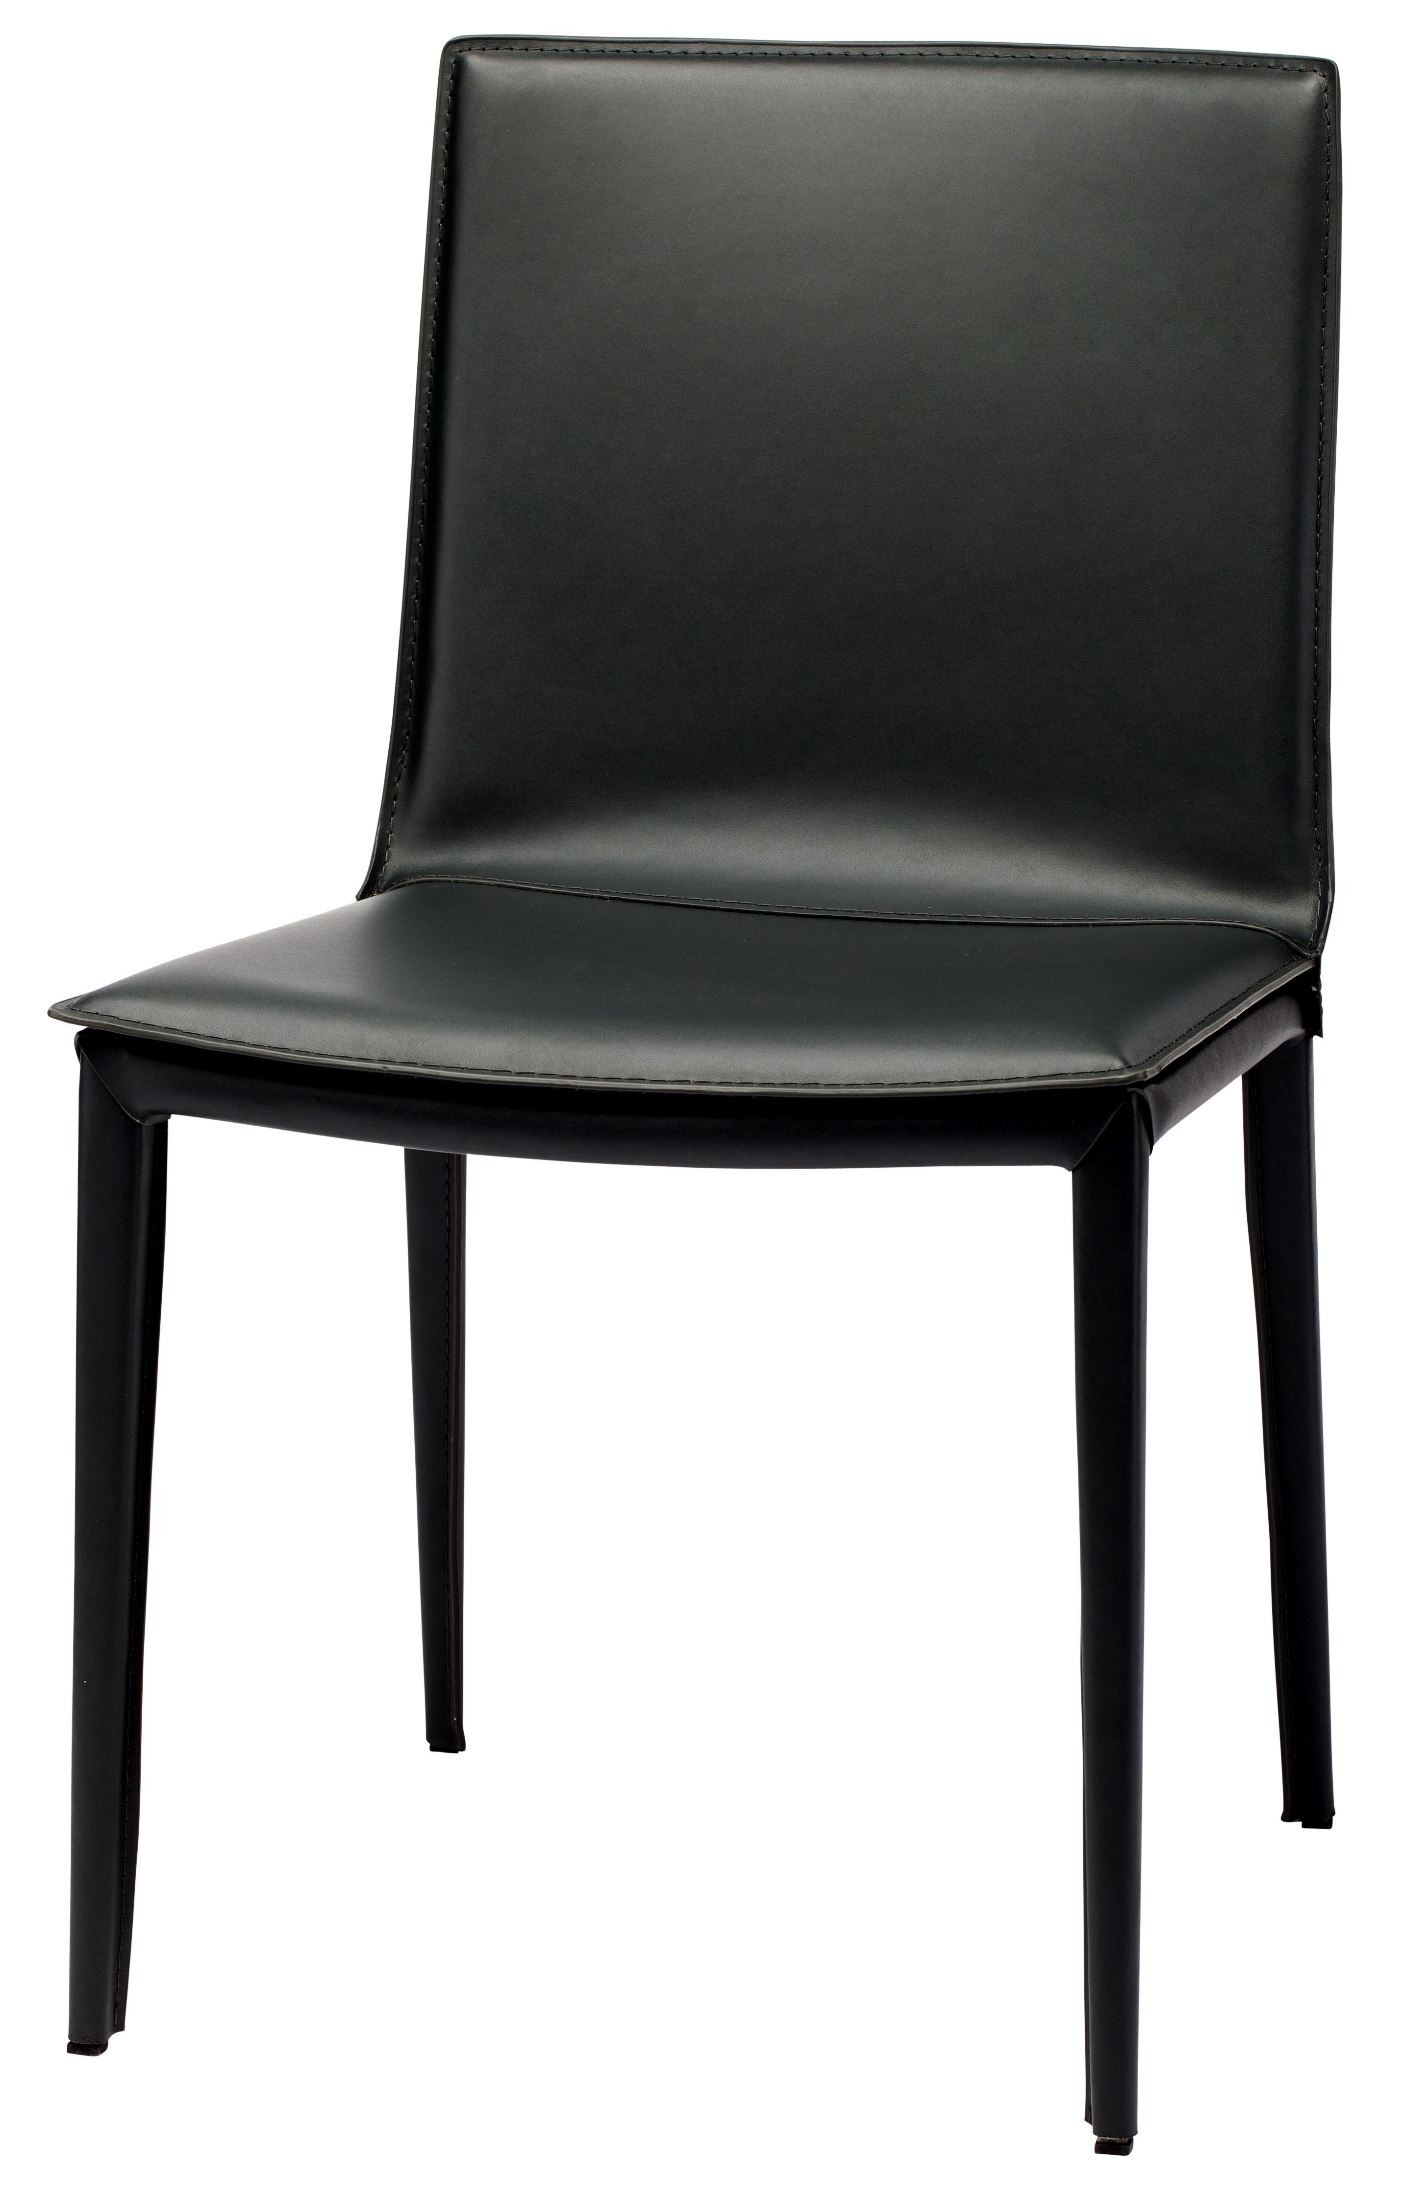 black leather chair dining sleeper and a half palma from nuevo coleman